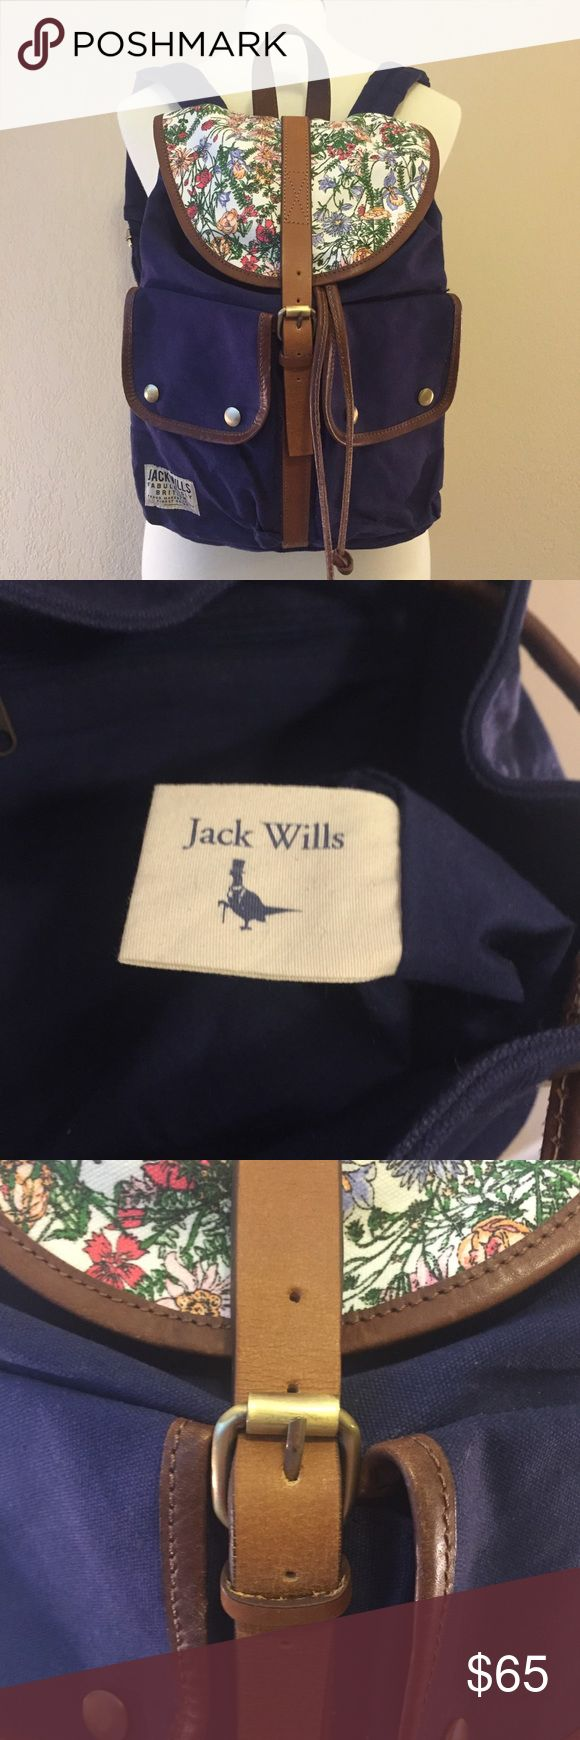 Jack Wills Floral Navy Buckle Drawstring Backpack Jack Wills Navy backpack with floral flap that buckles. Underneath the flap, the bag also has a drawstring closure. Two exterior pockets with snaps and one zipped interior compartment. Adjustable straps. 100% cotton shell and lining. Gently used and in great condition!! Very light wear to the leather strap that is used to buckle the bag and to the drawstrings. Both fabric interior and exterior are clean and in like new condition. Easily fits…